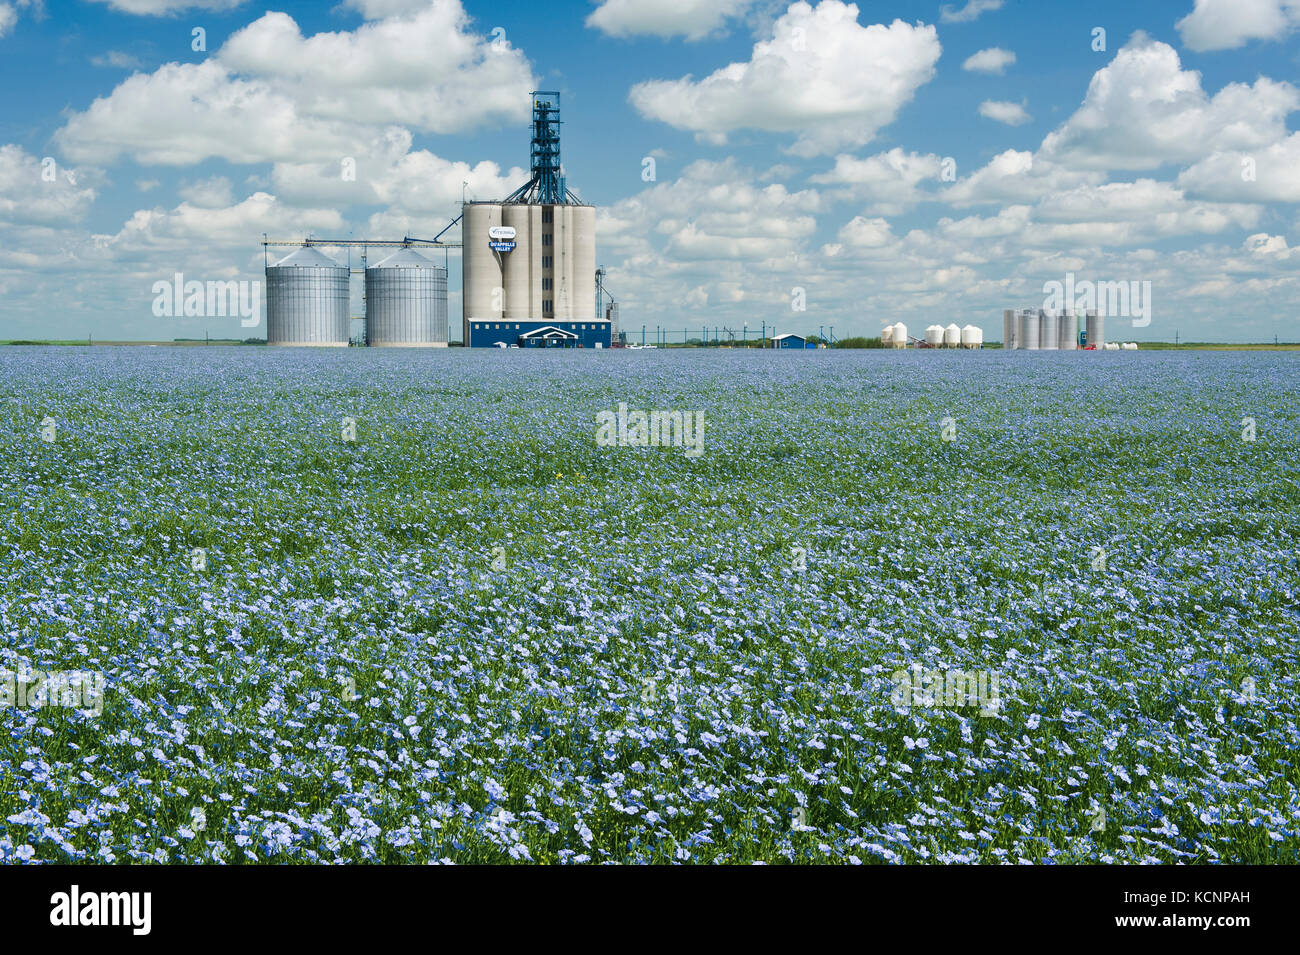 flax in front of an inland grain terminal, Grenfell, Saskatchewan, Canada - Stock Image